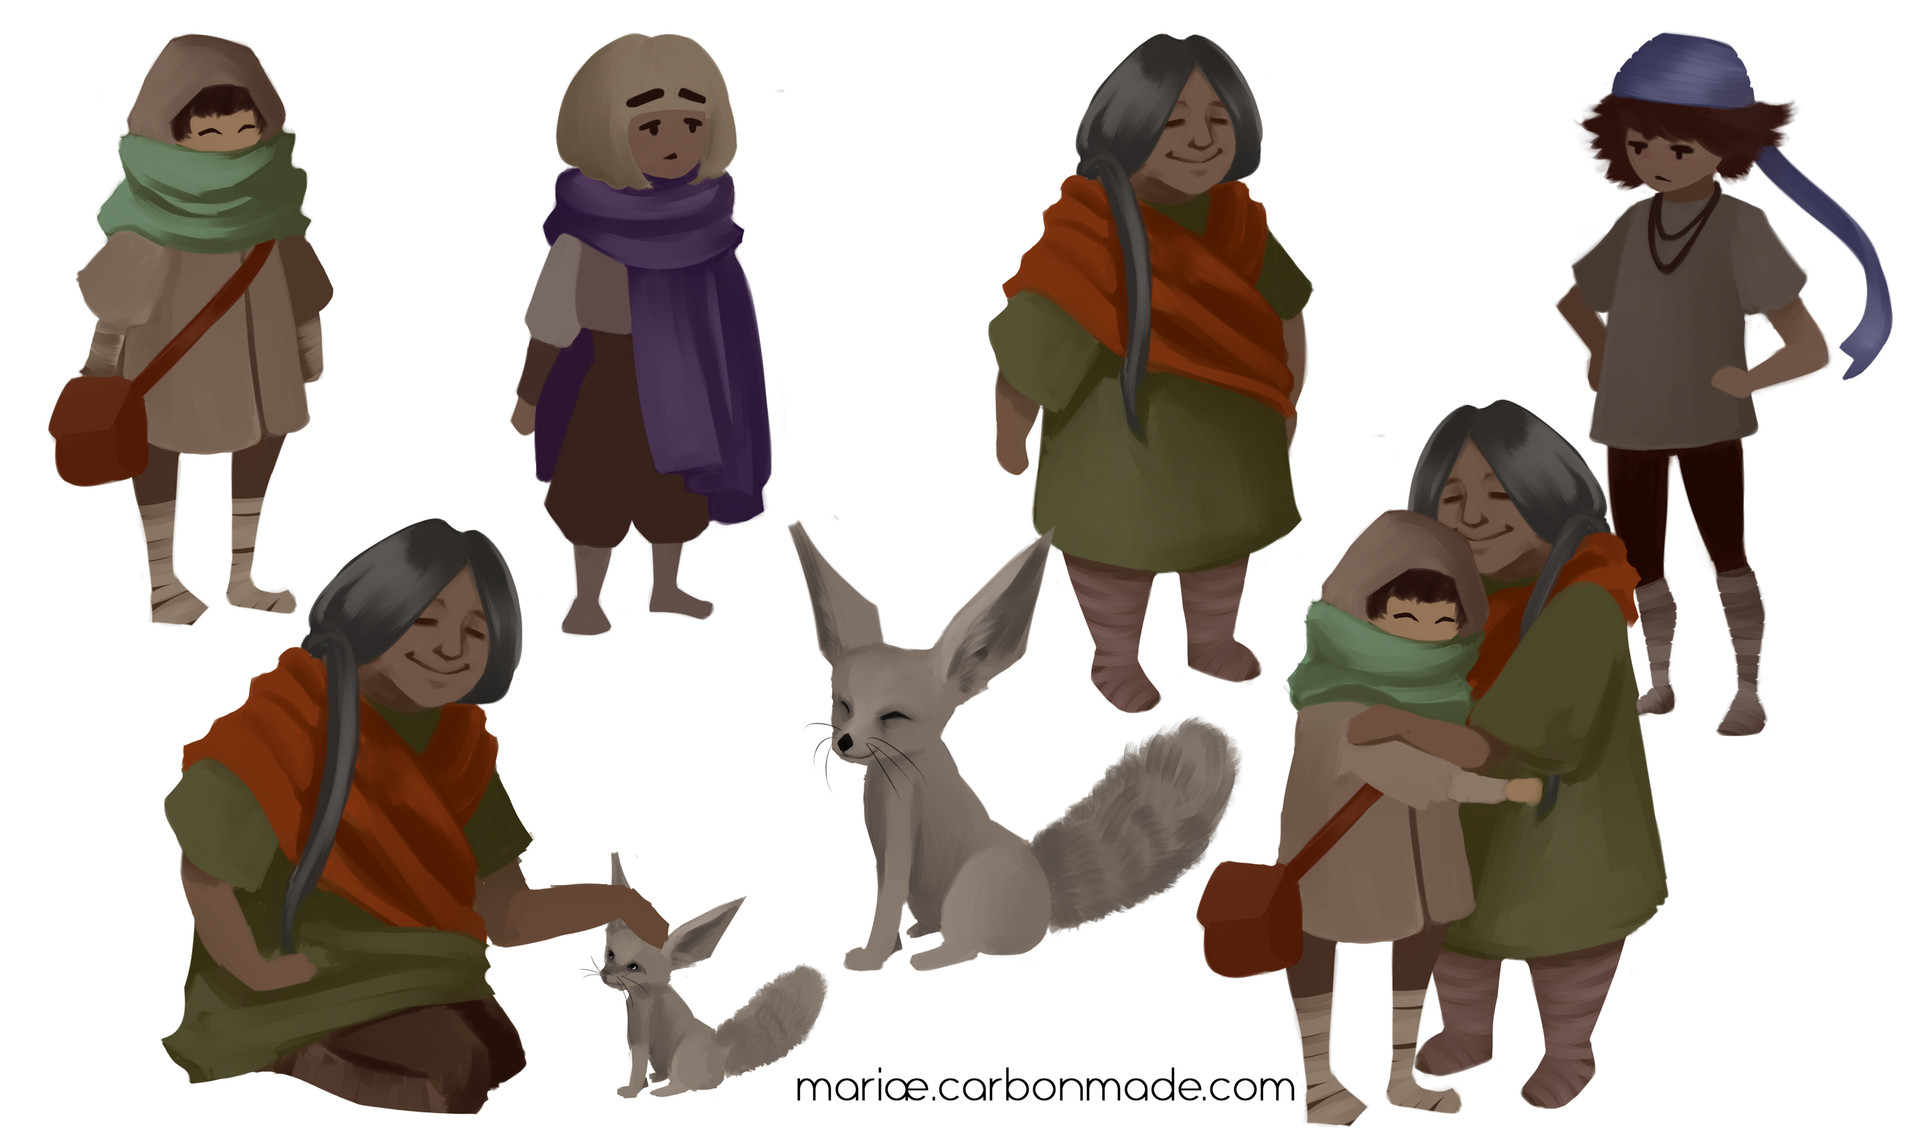 Characters that appear in the fake-gameplay video I made for the class using Adobe After Effects.